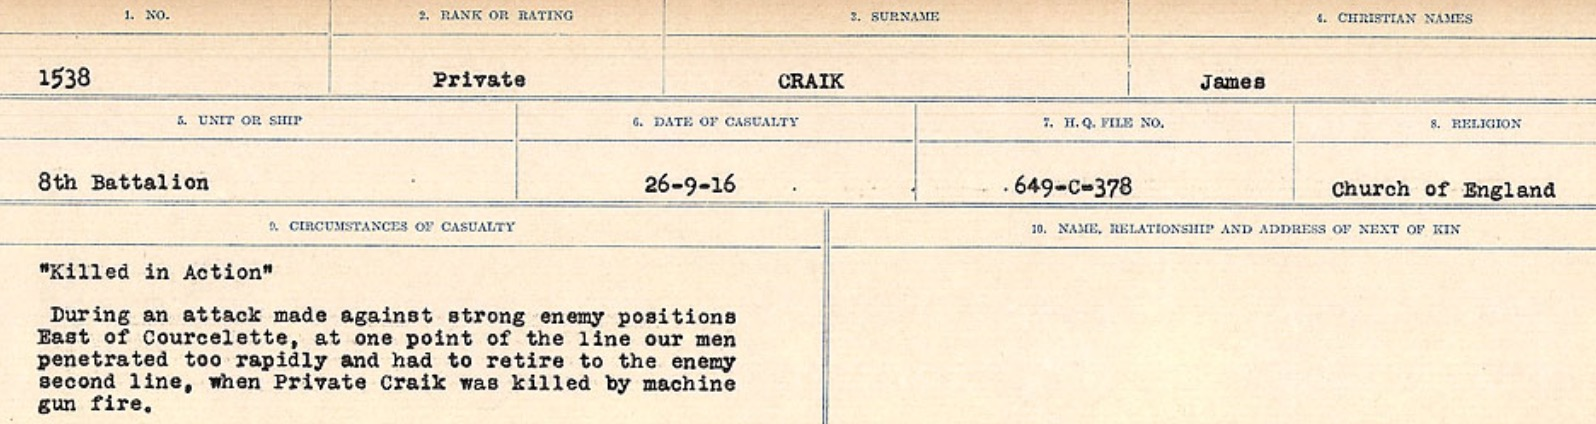 Circumstances of death registers– Source: Library and Archives Canada. CIRCUMSTANCES OF DEATH REGISTERS, FIRST WORLD WAR Surnames: CRABB TO CROSSLAND Microform Sequence 24; Volume Number 31829_B016733. Reference RG150, 1992-93/314, 168. Page 161 of 788.